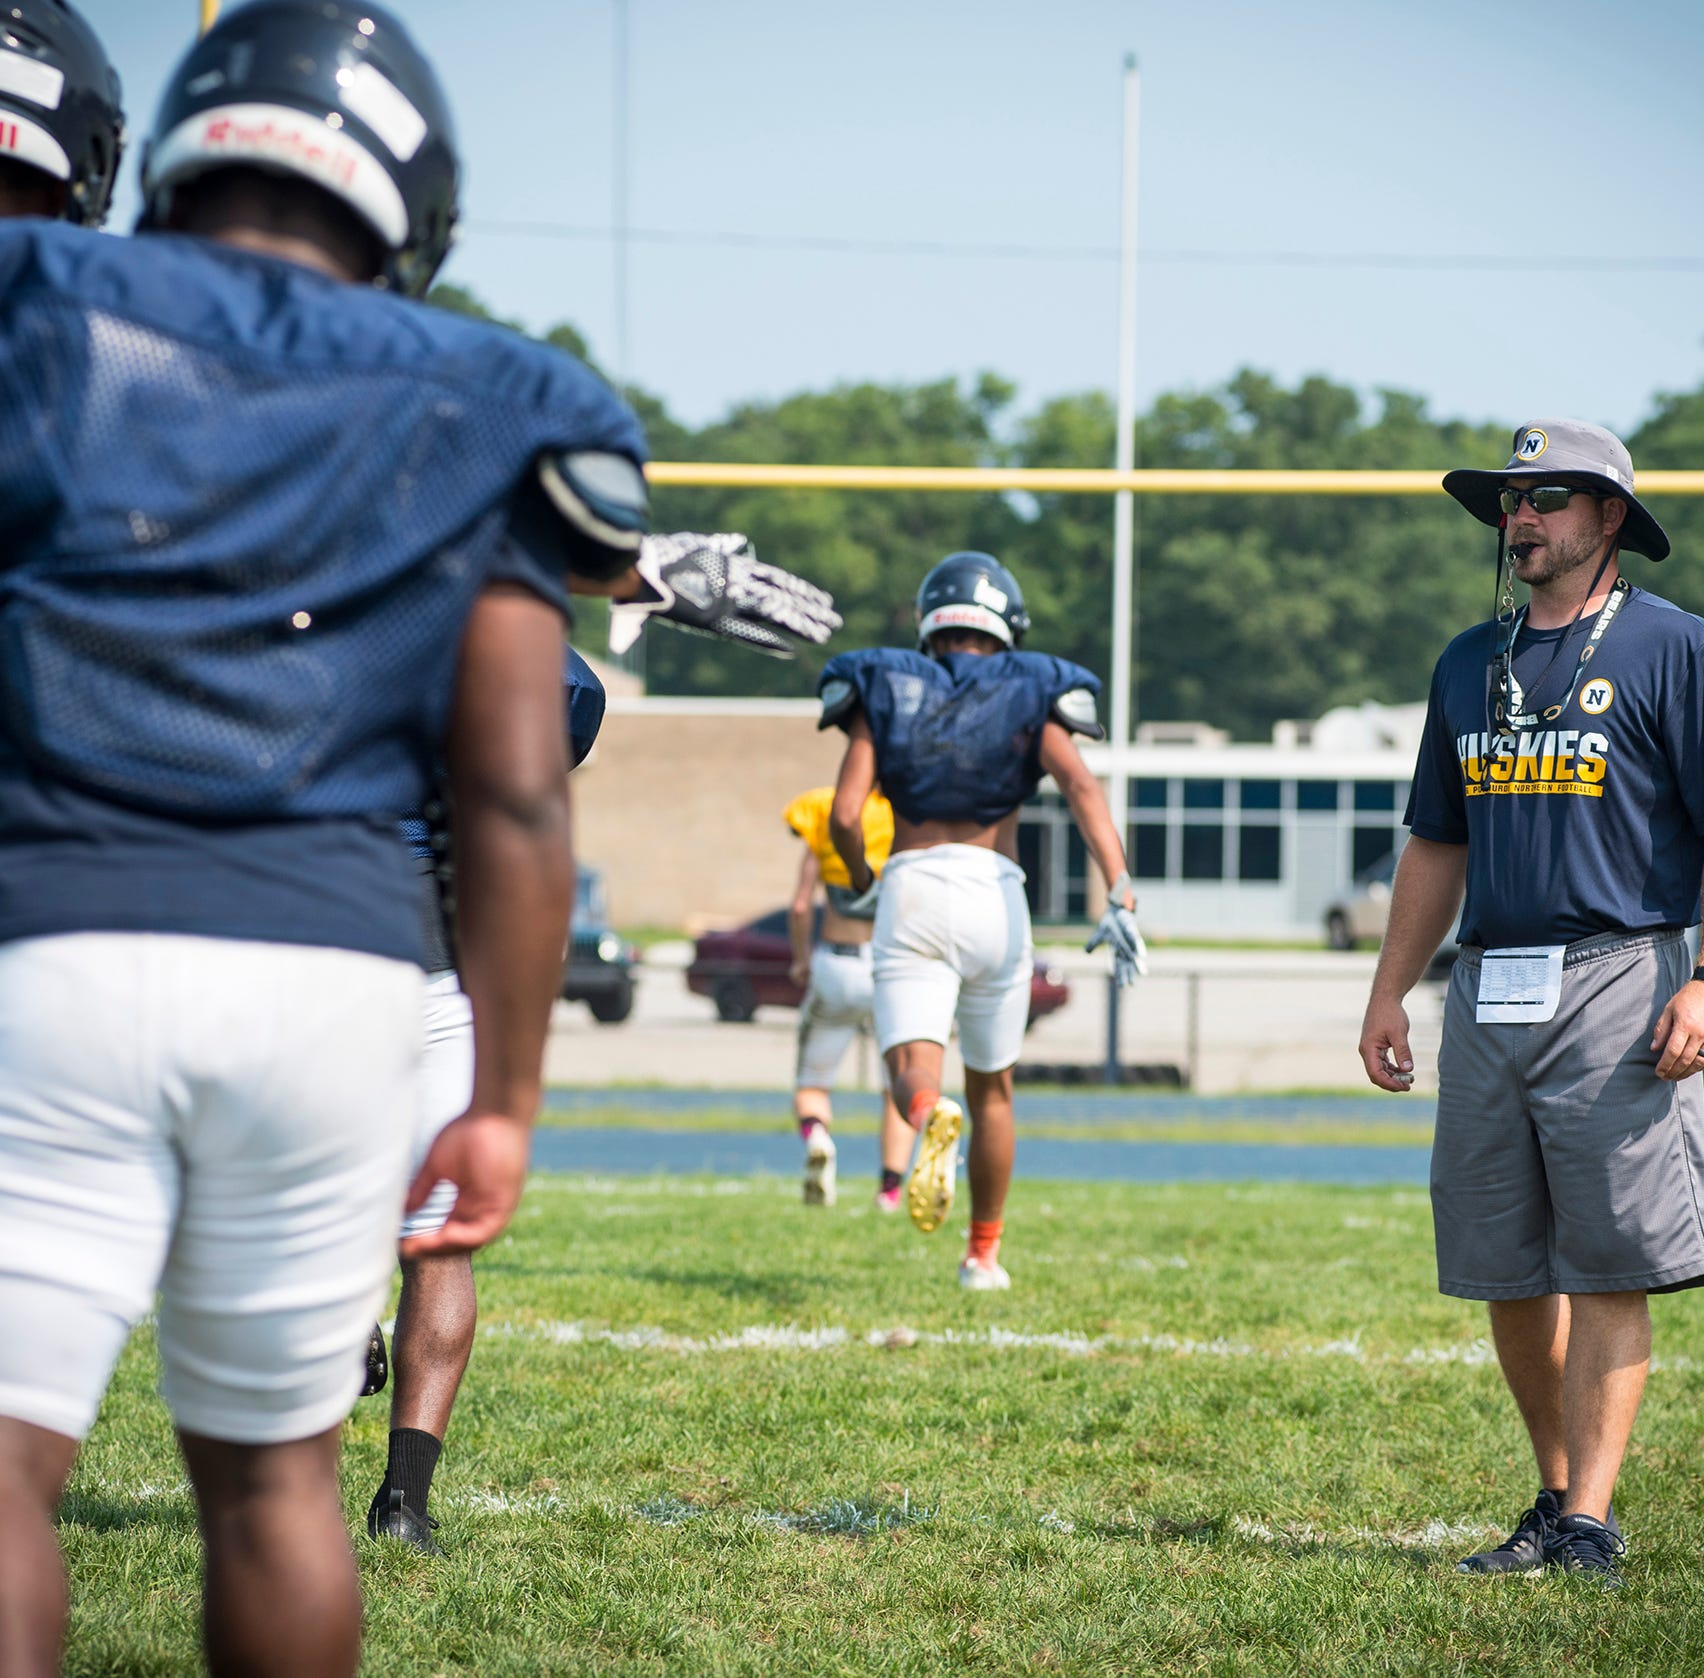 Port Huron Northern hopes to build on historic season